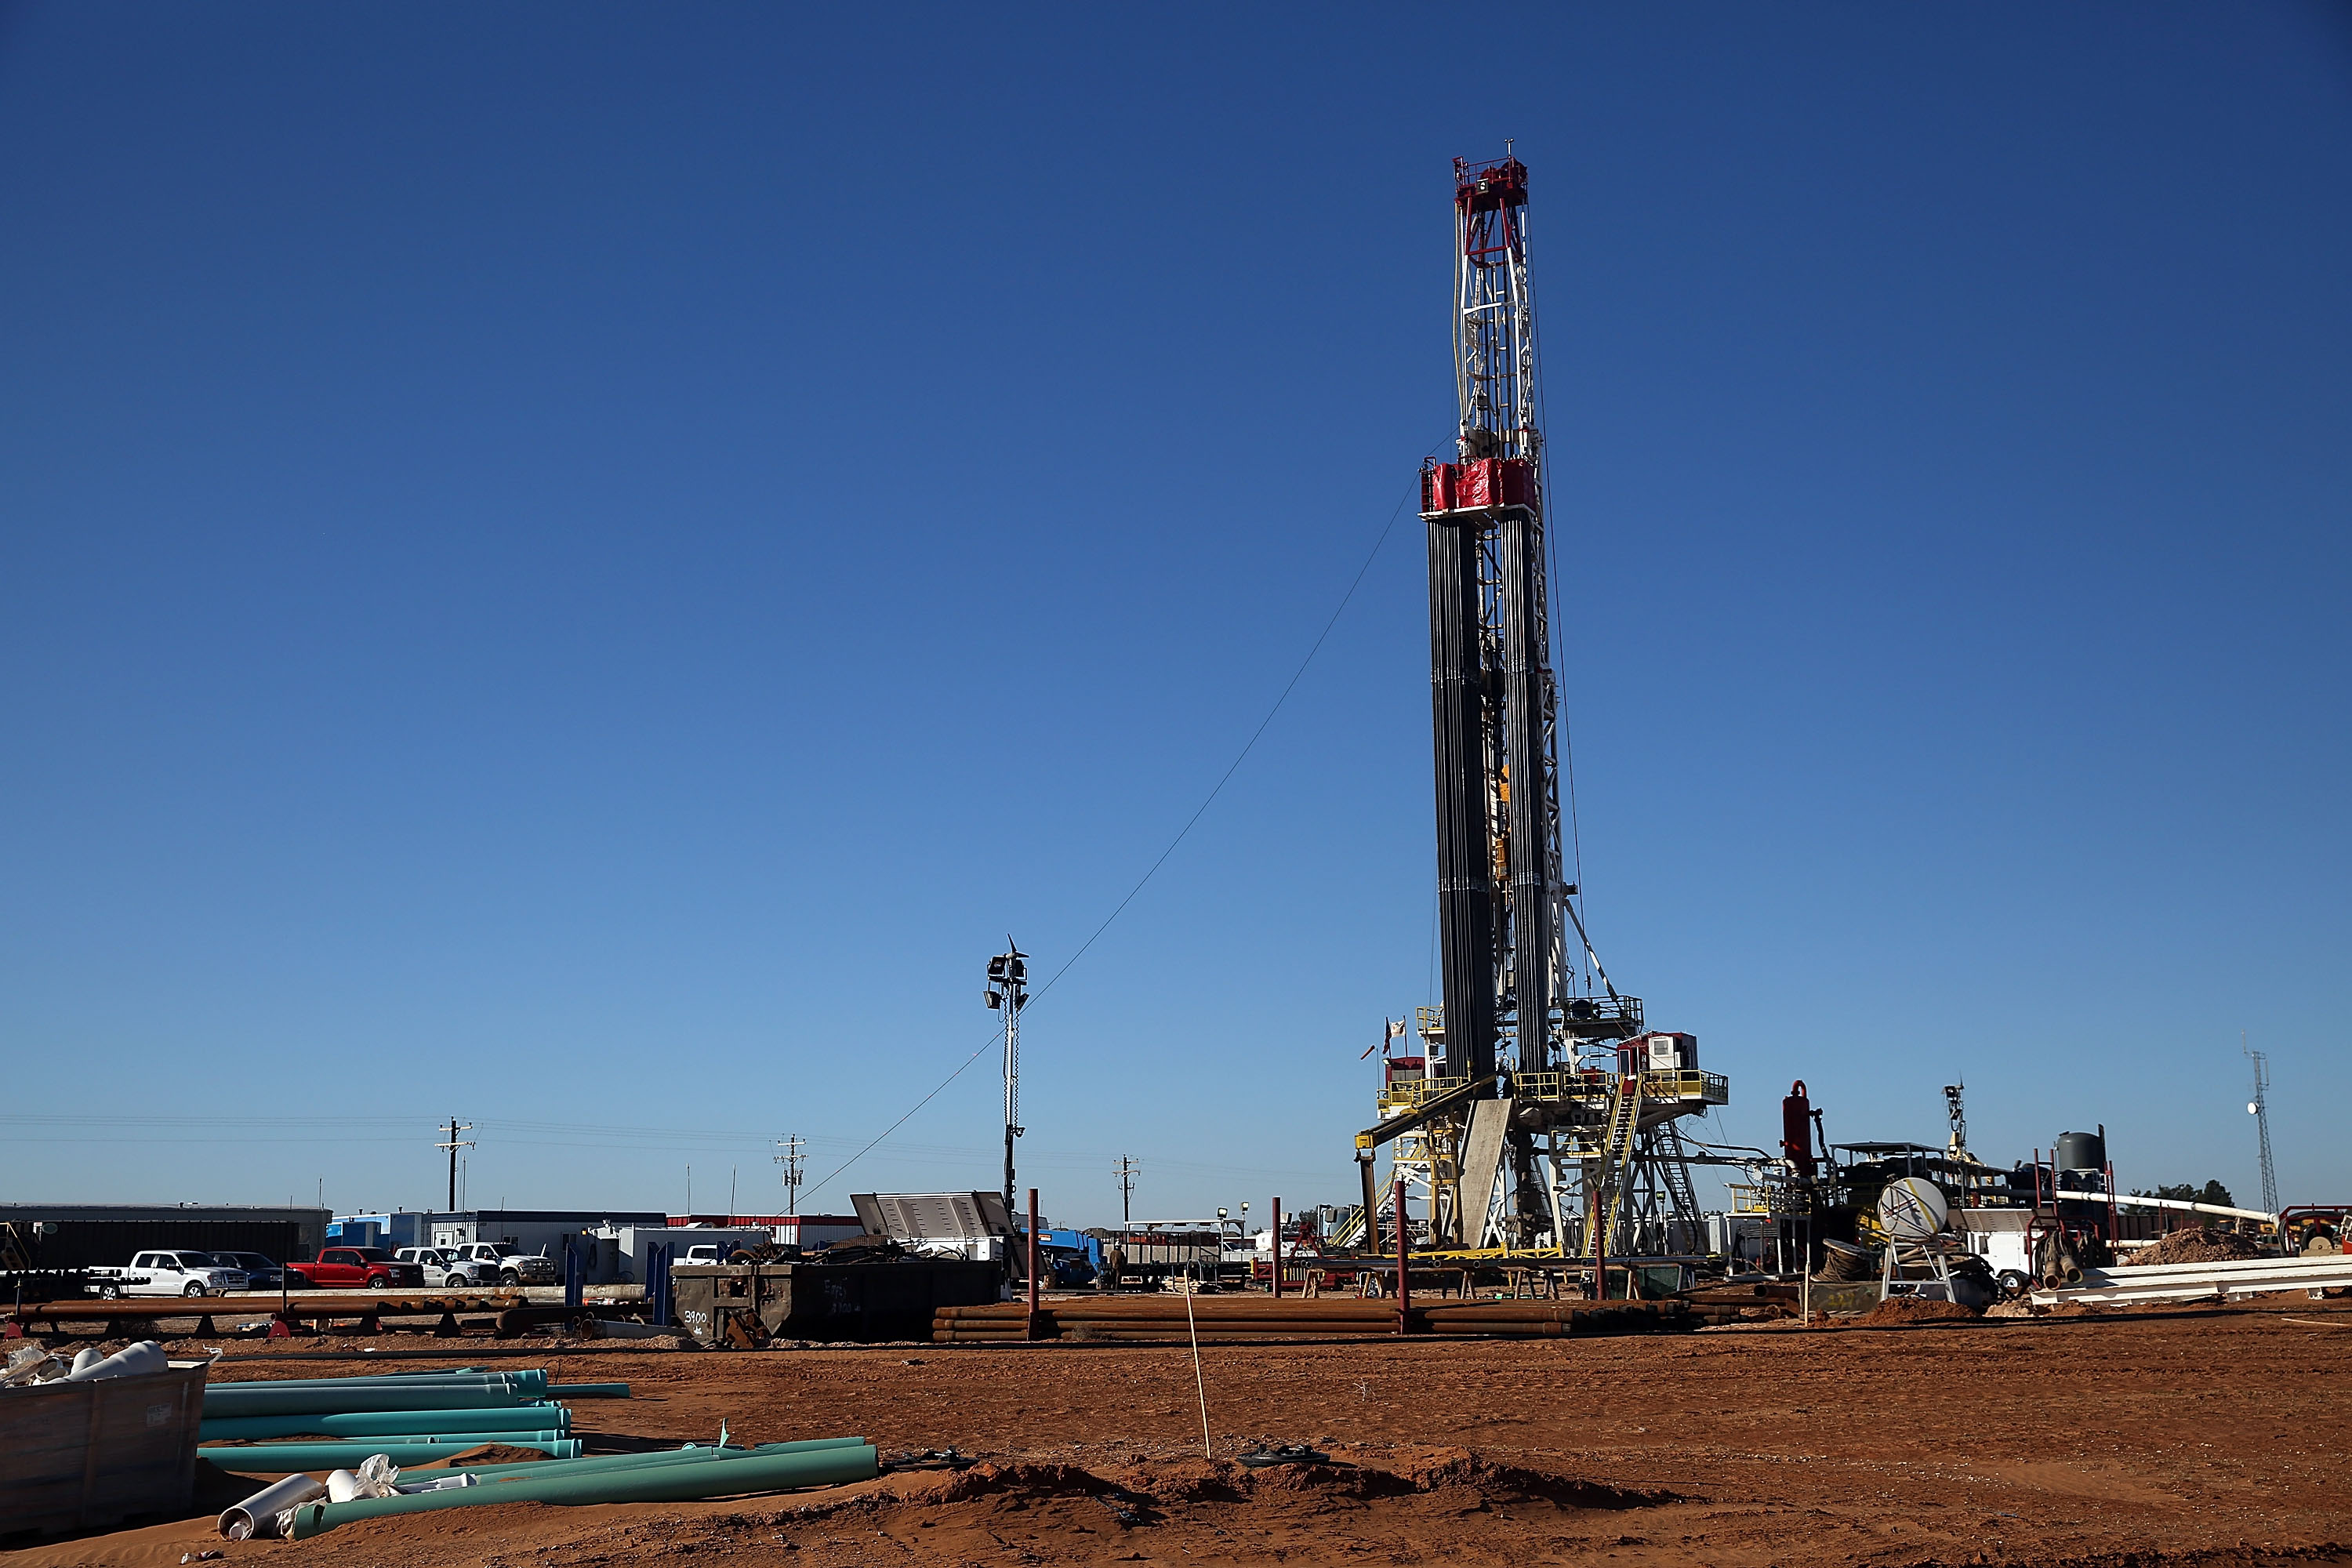 when mothers live near fracking sites babies are more likely to be born underweight